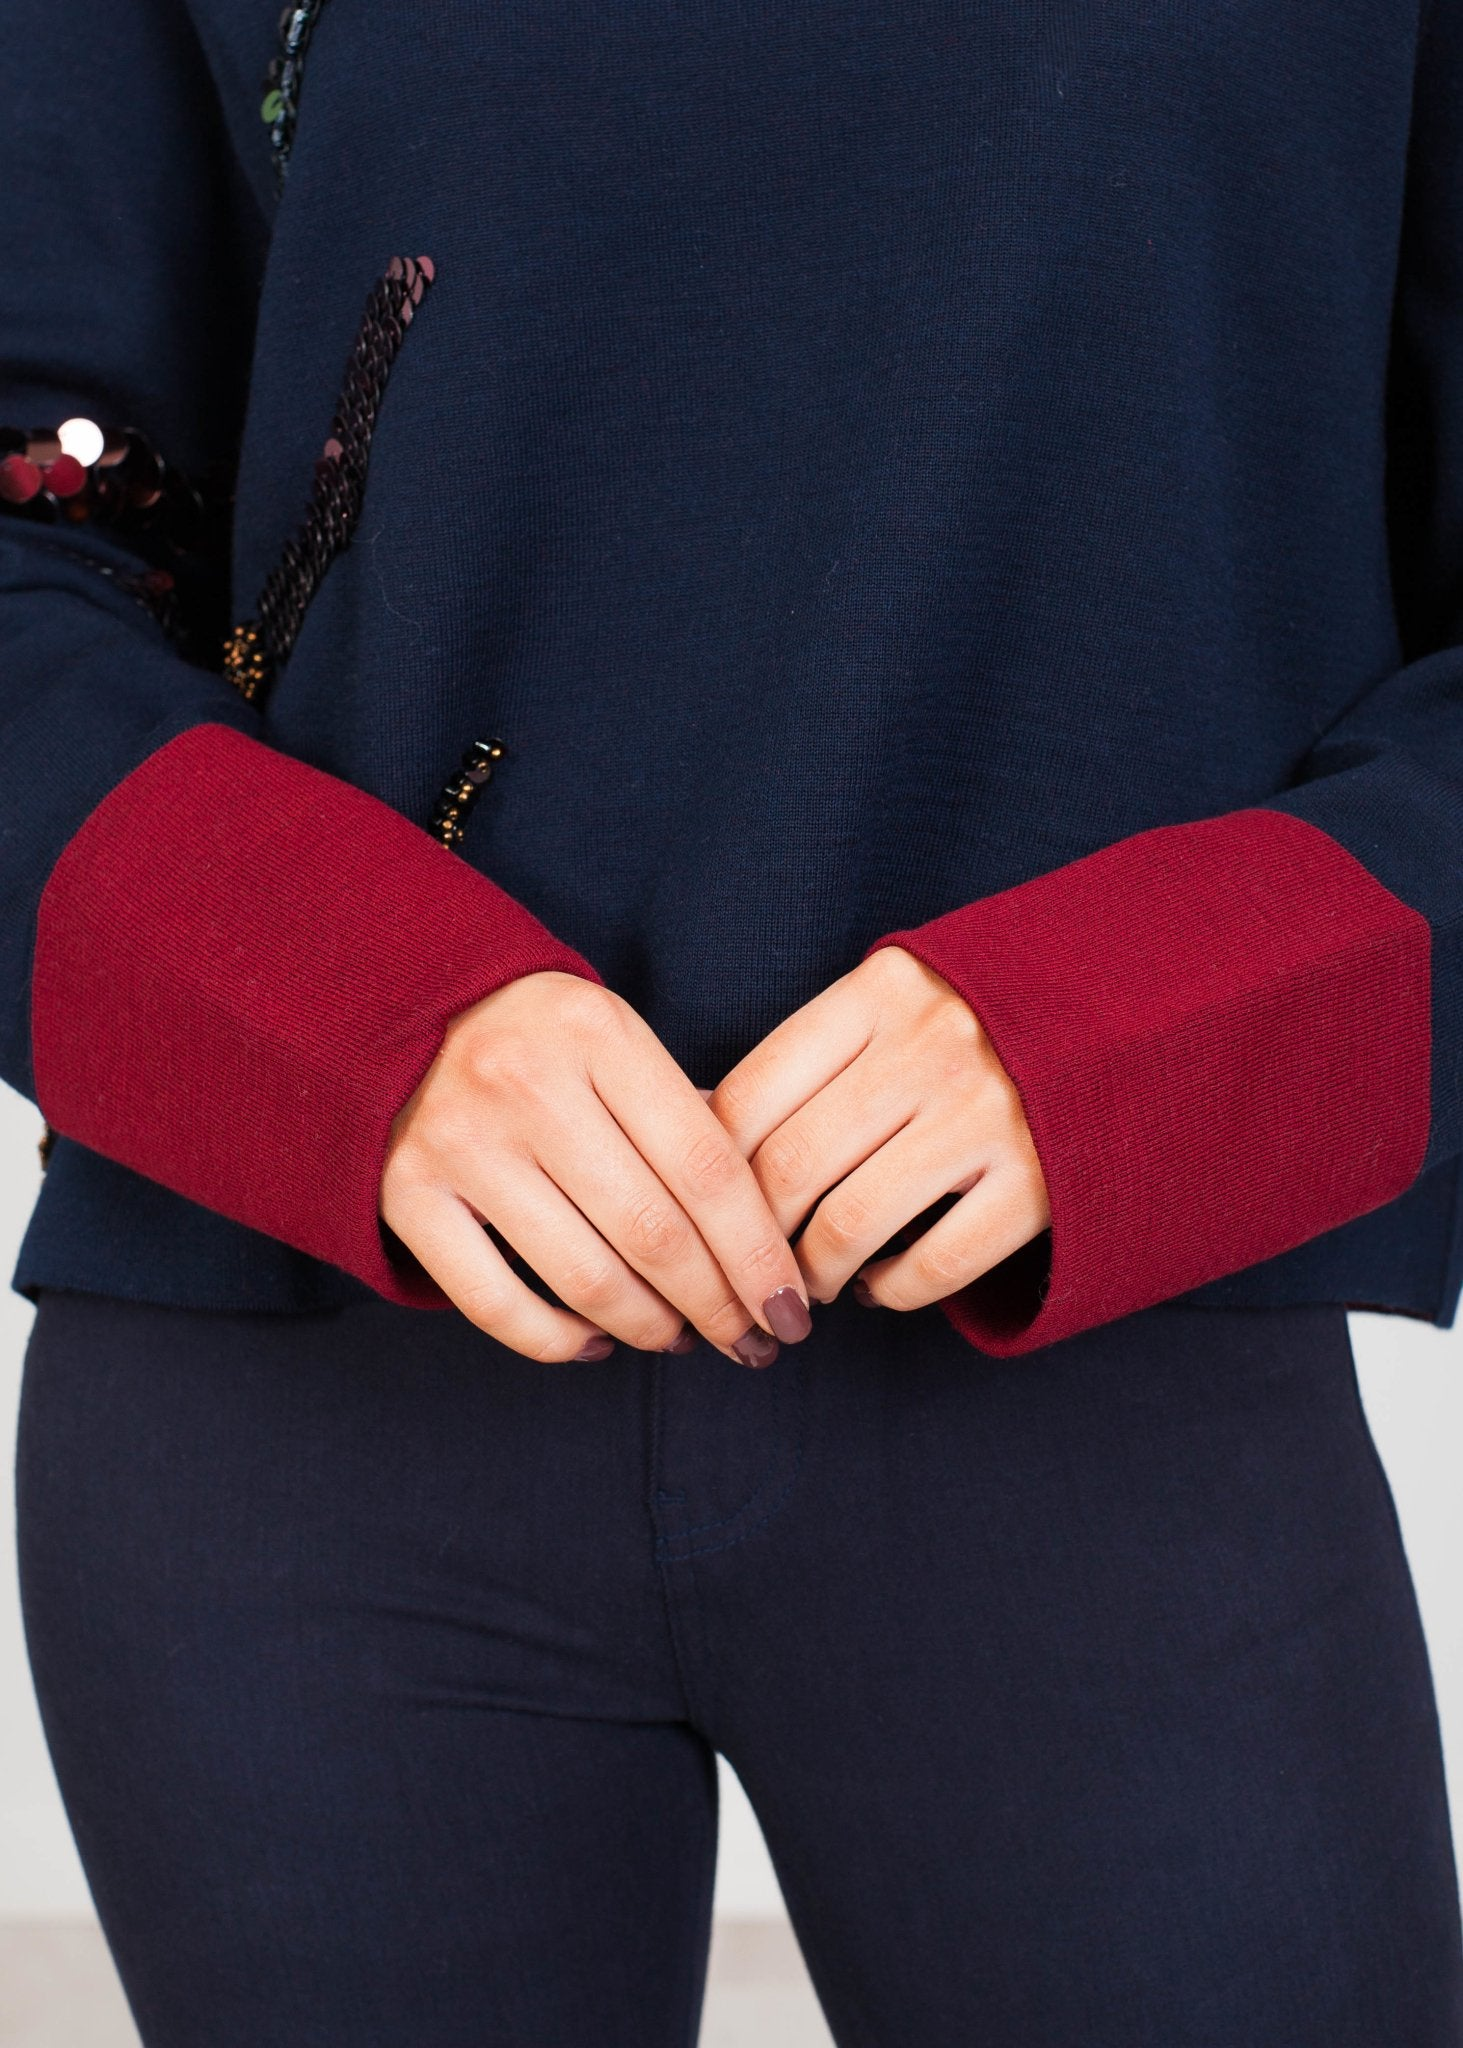 Eva Polo Neck In Navy With Sequins - The Walk in Wardrobe